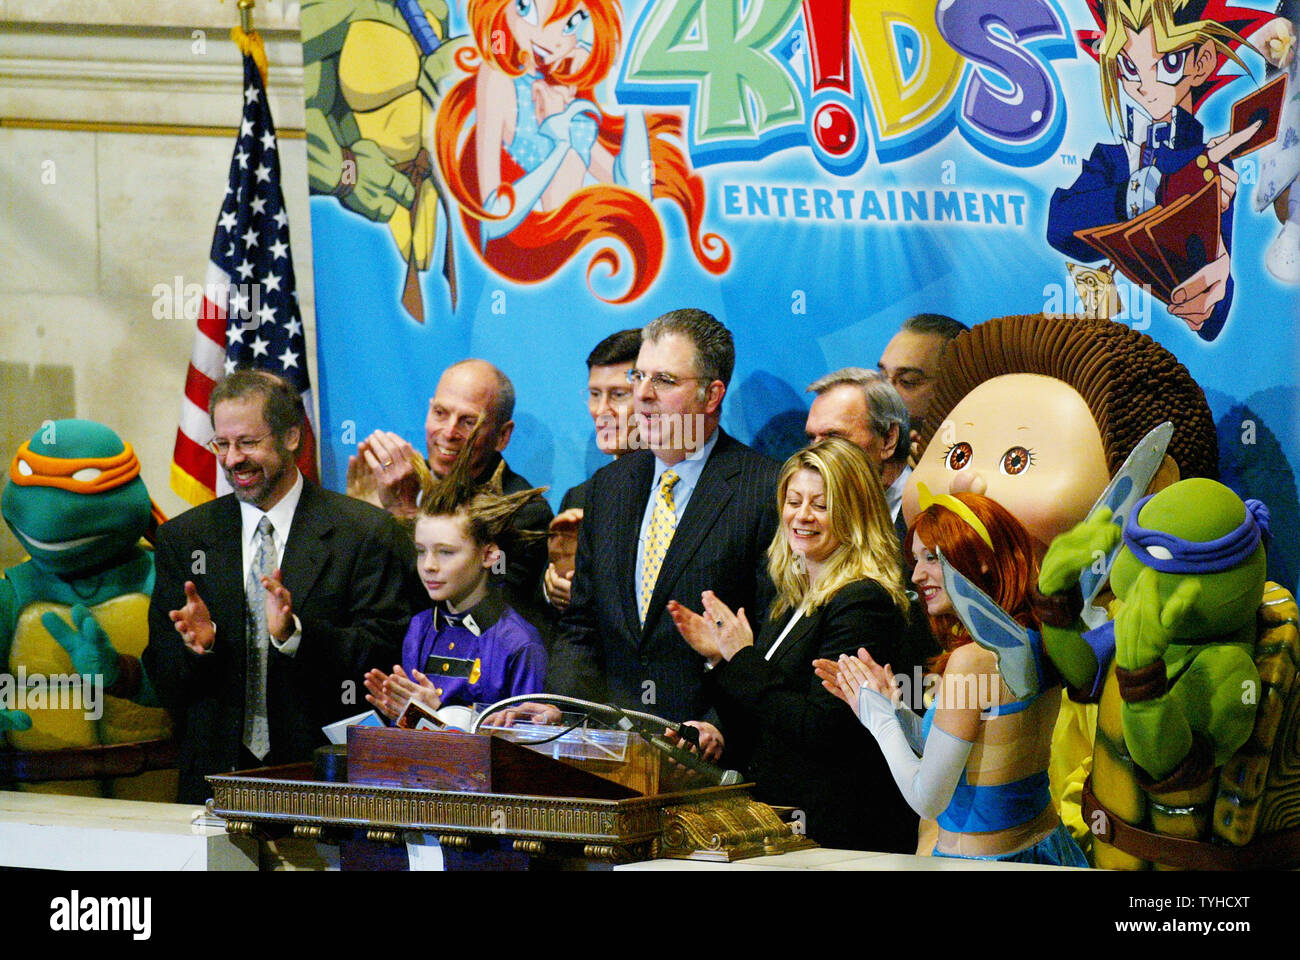 Alfred Kahn, center, chairman and CEO of 4 Kids Entertainment, is